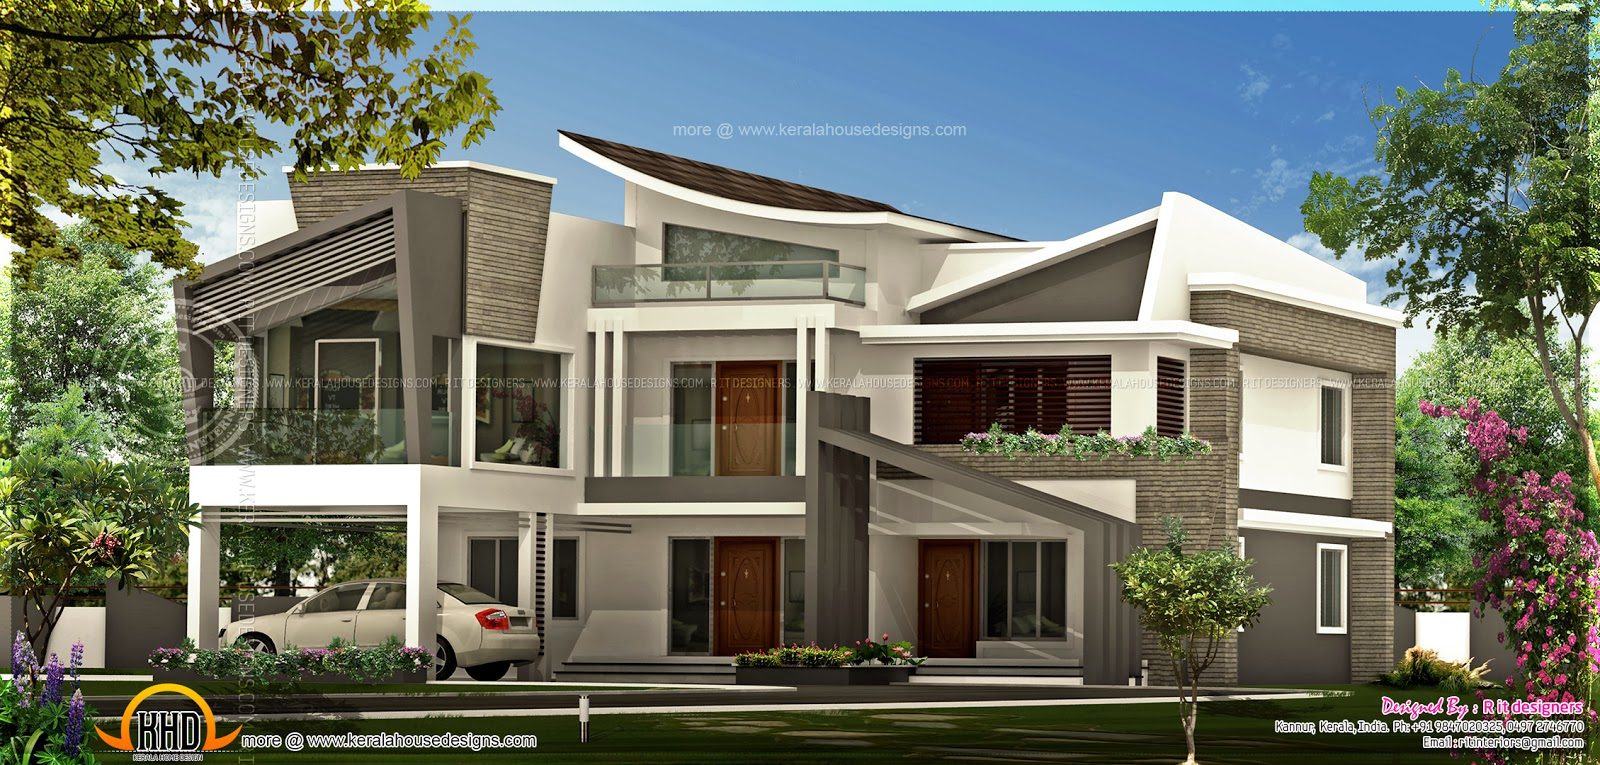 Top 19 photos ideas for unique modern houses home plans for Cool modern house plans